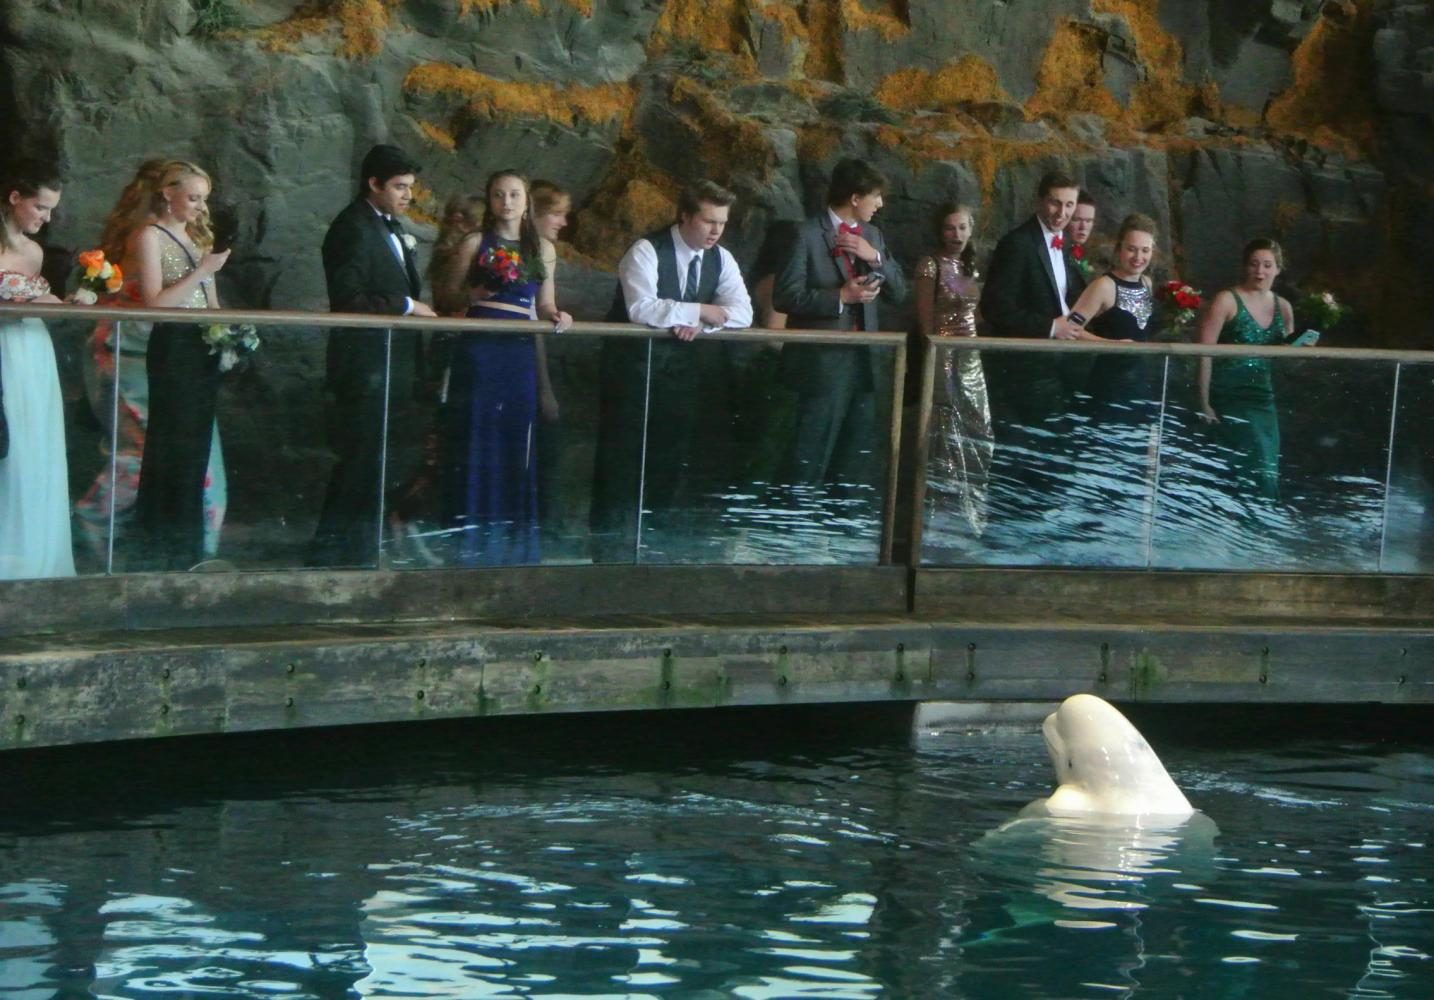 Shortly after entering the Shedd Aquarium, students stop to stare at one of the beluga whales in the pool.